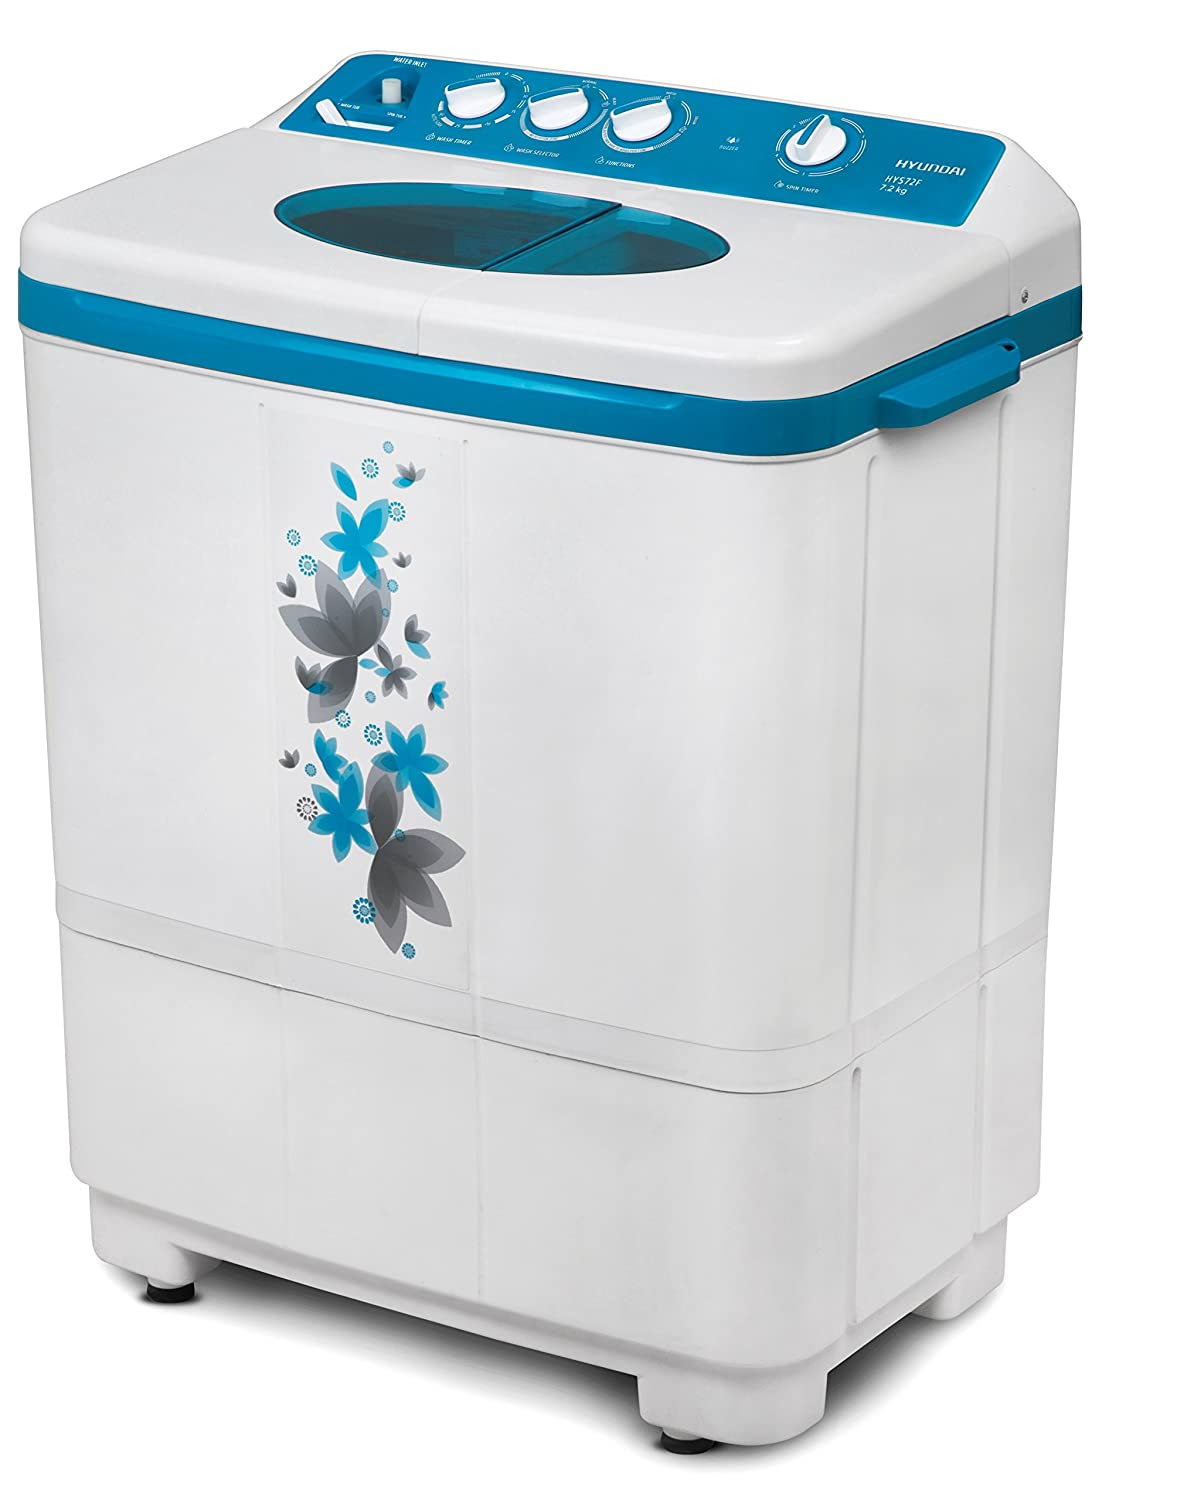 Deals on Hyundai 7.2 kg Semi-Automatic Top Loading Washing Machine